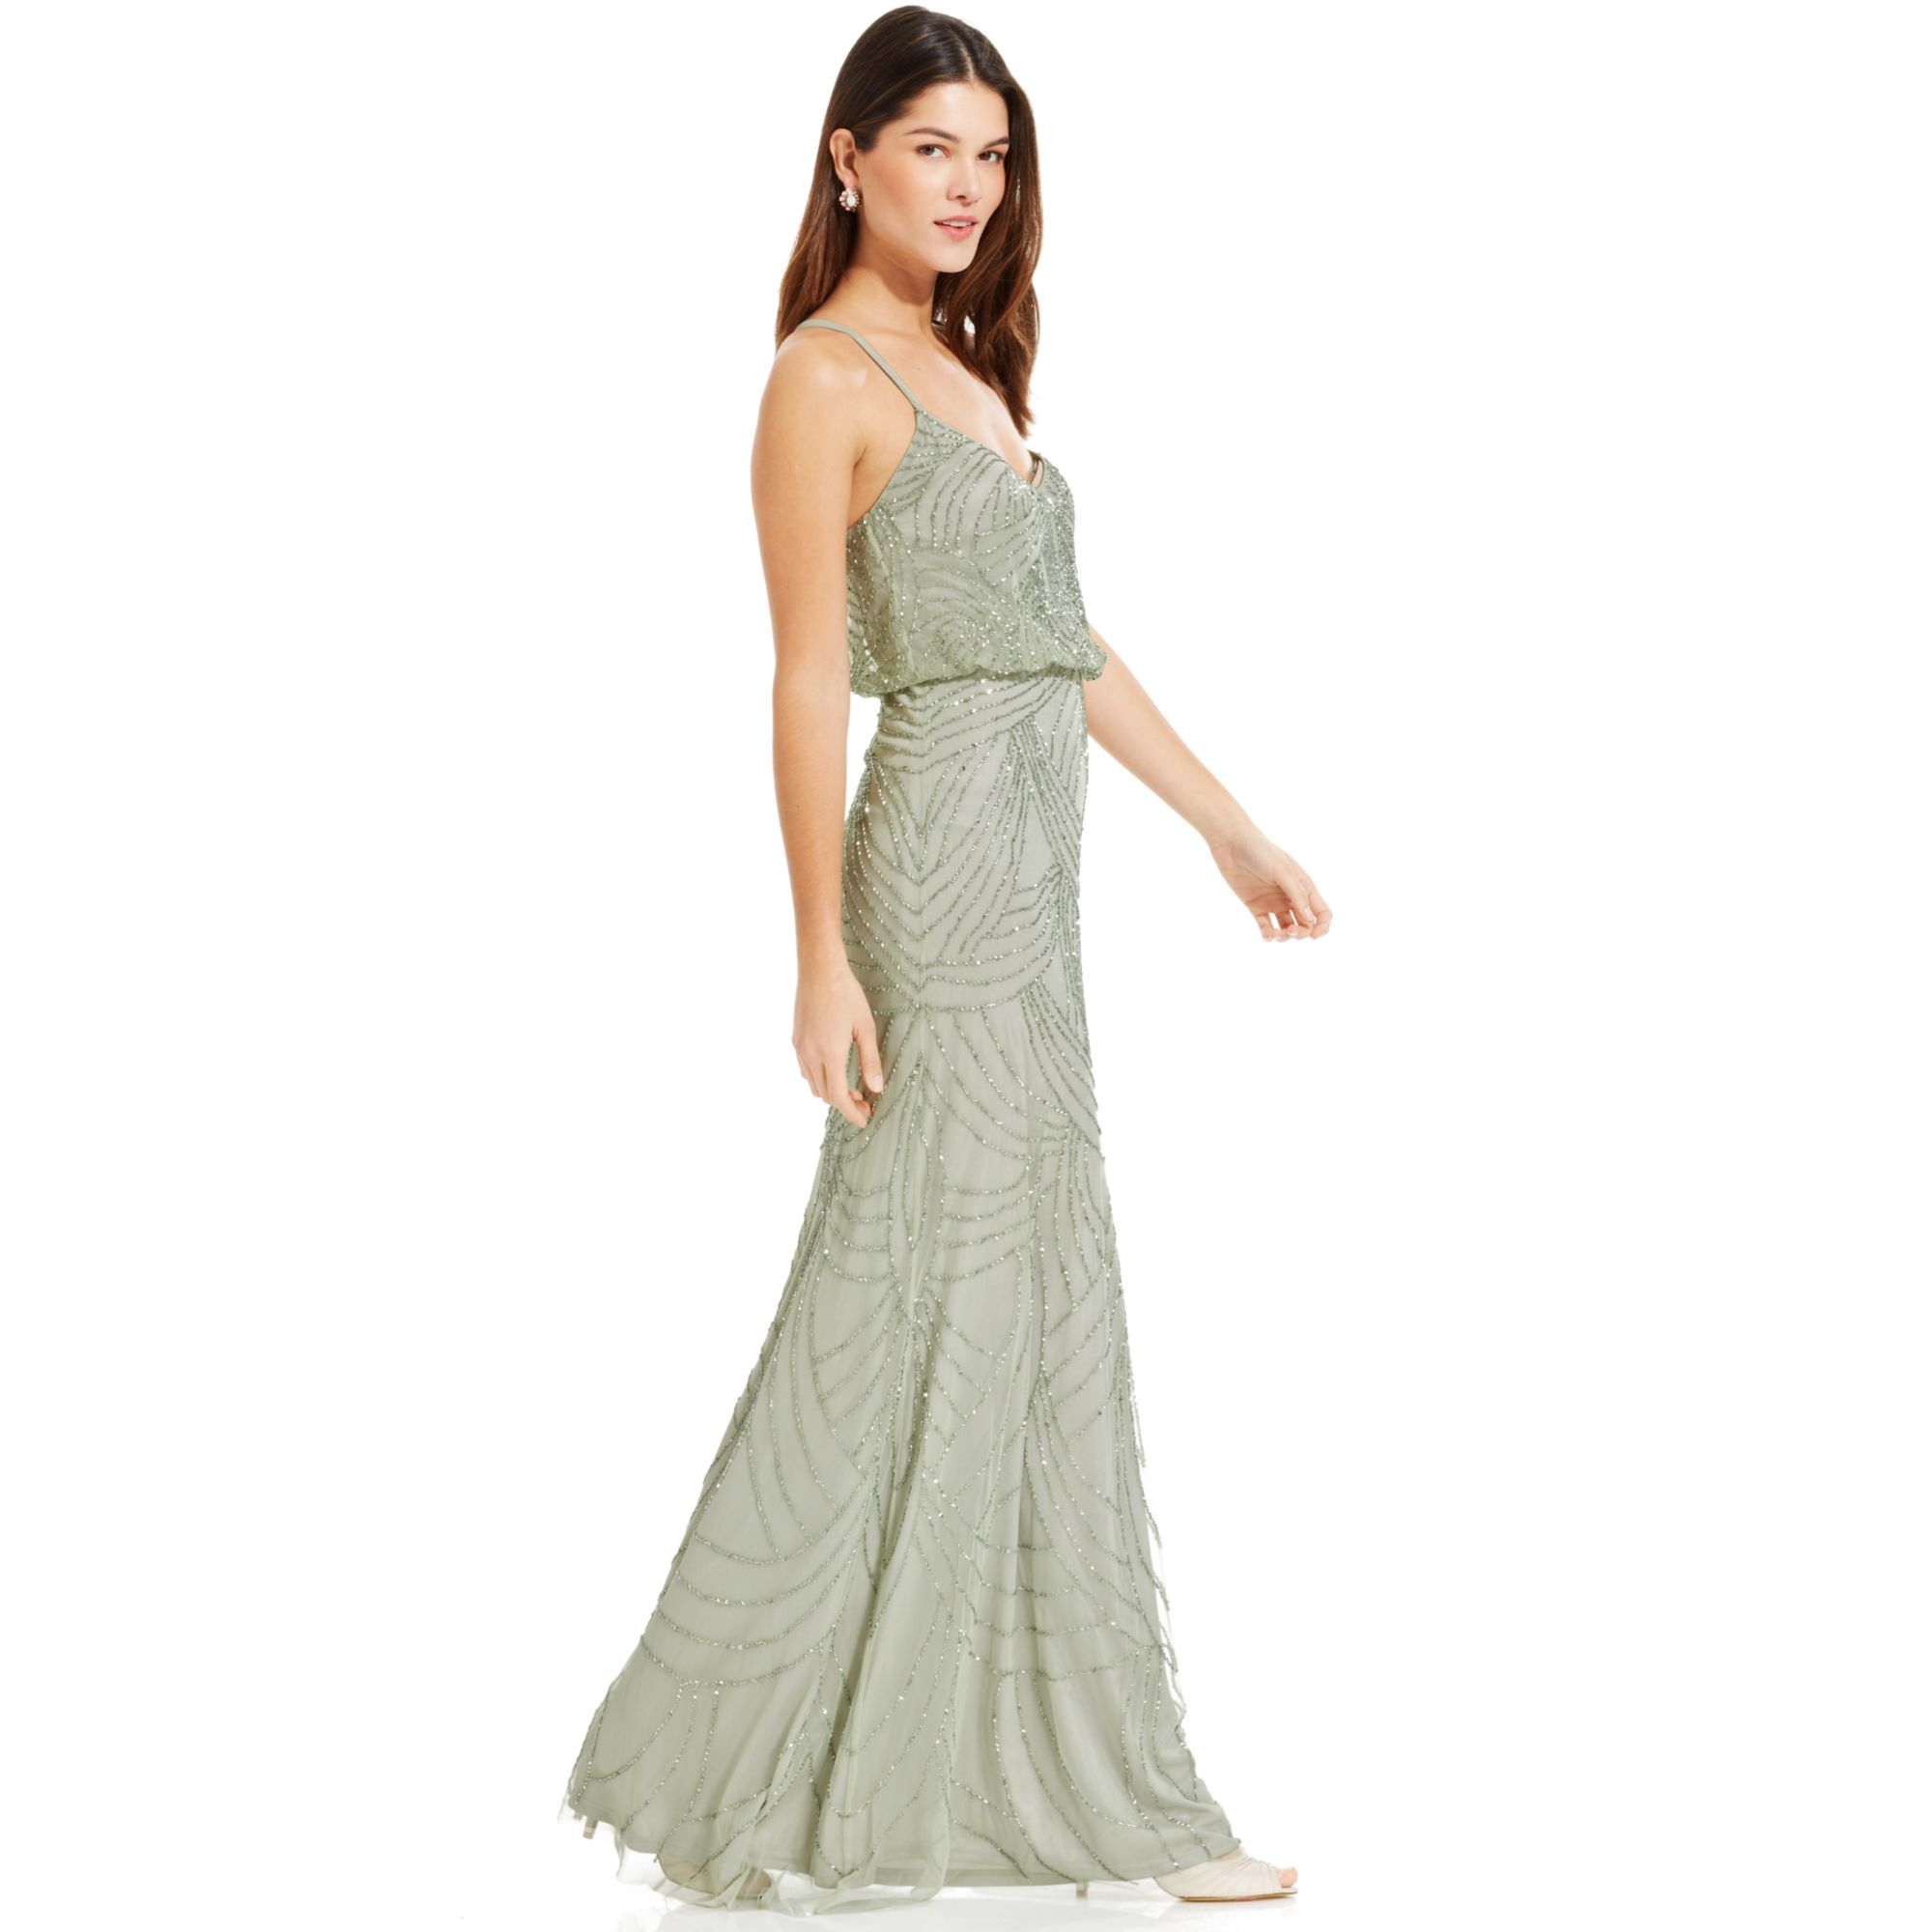 Adrianna papell sleeveless beaded blouson gown in green lyst for Adrianna papell wedding guest dresses